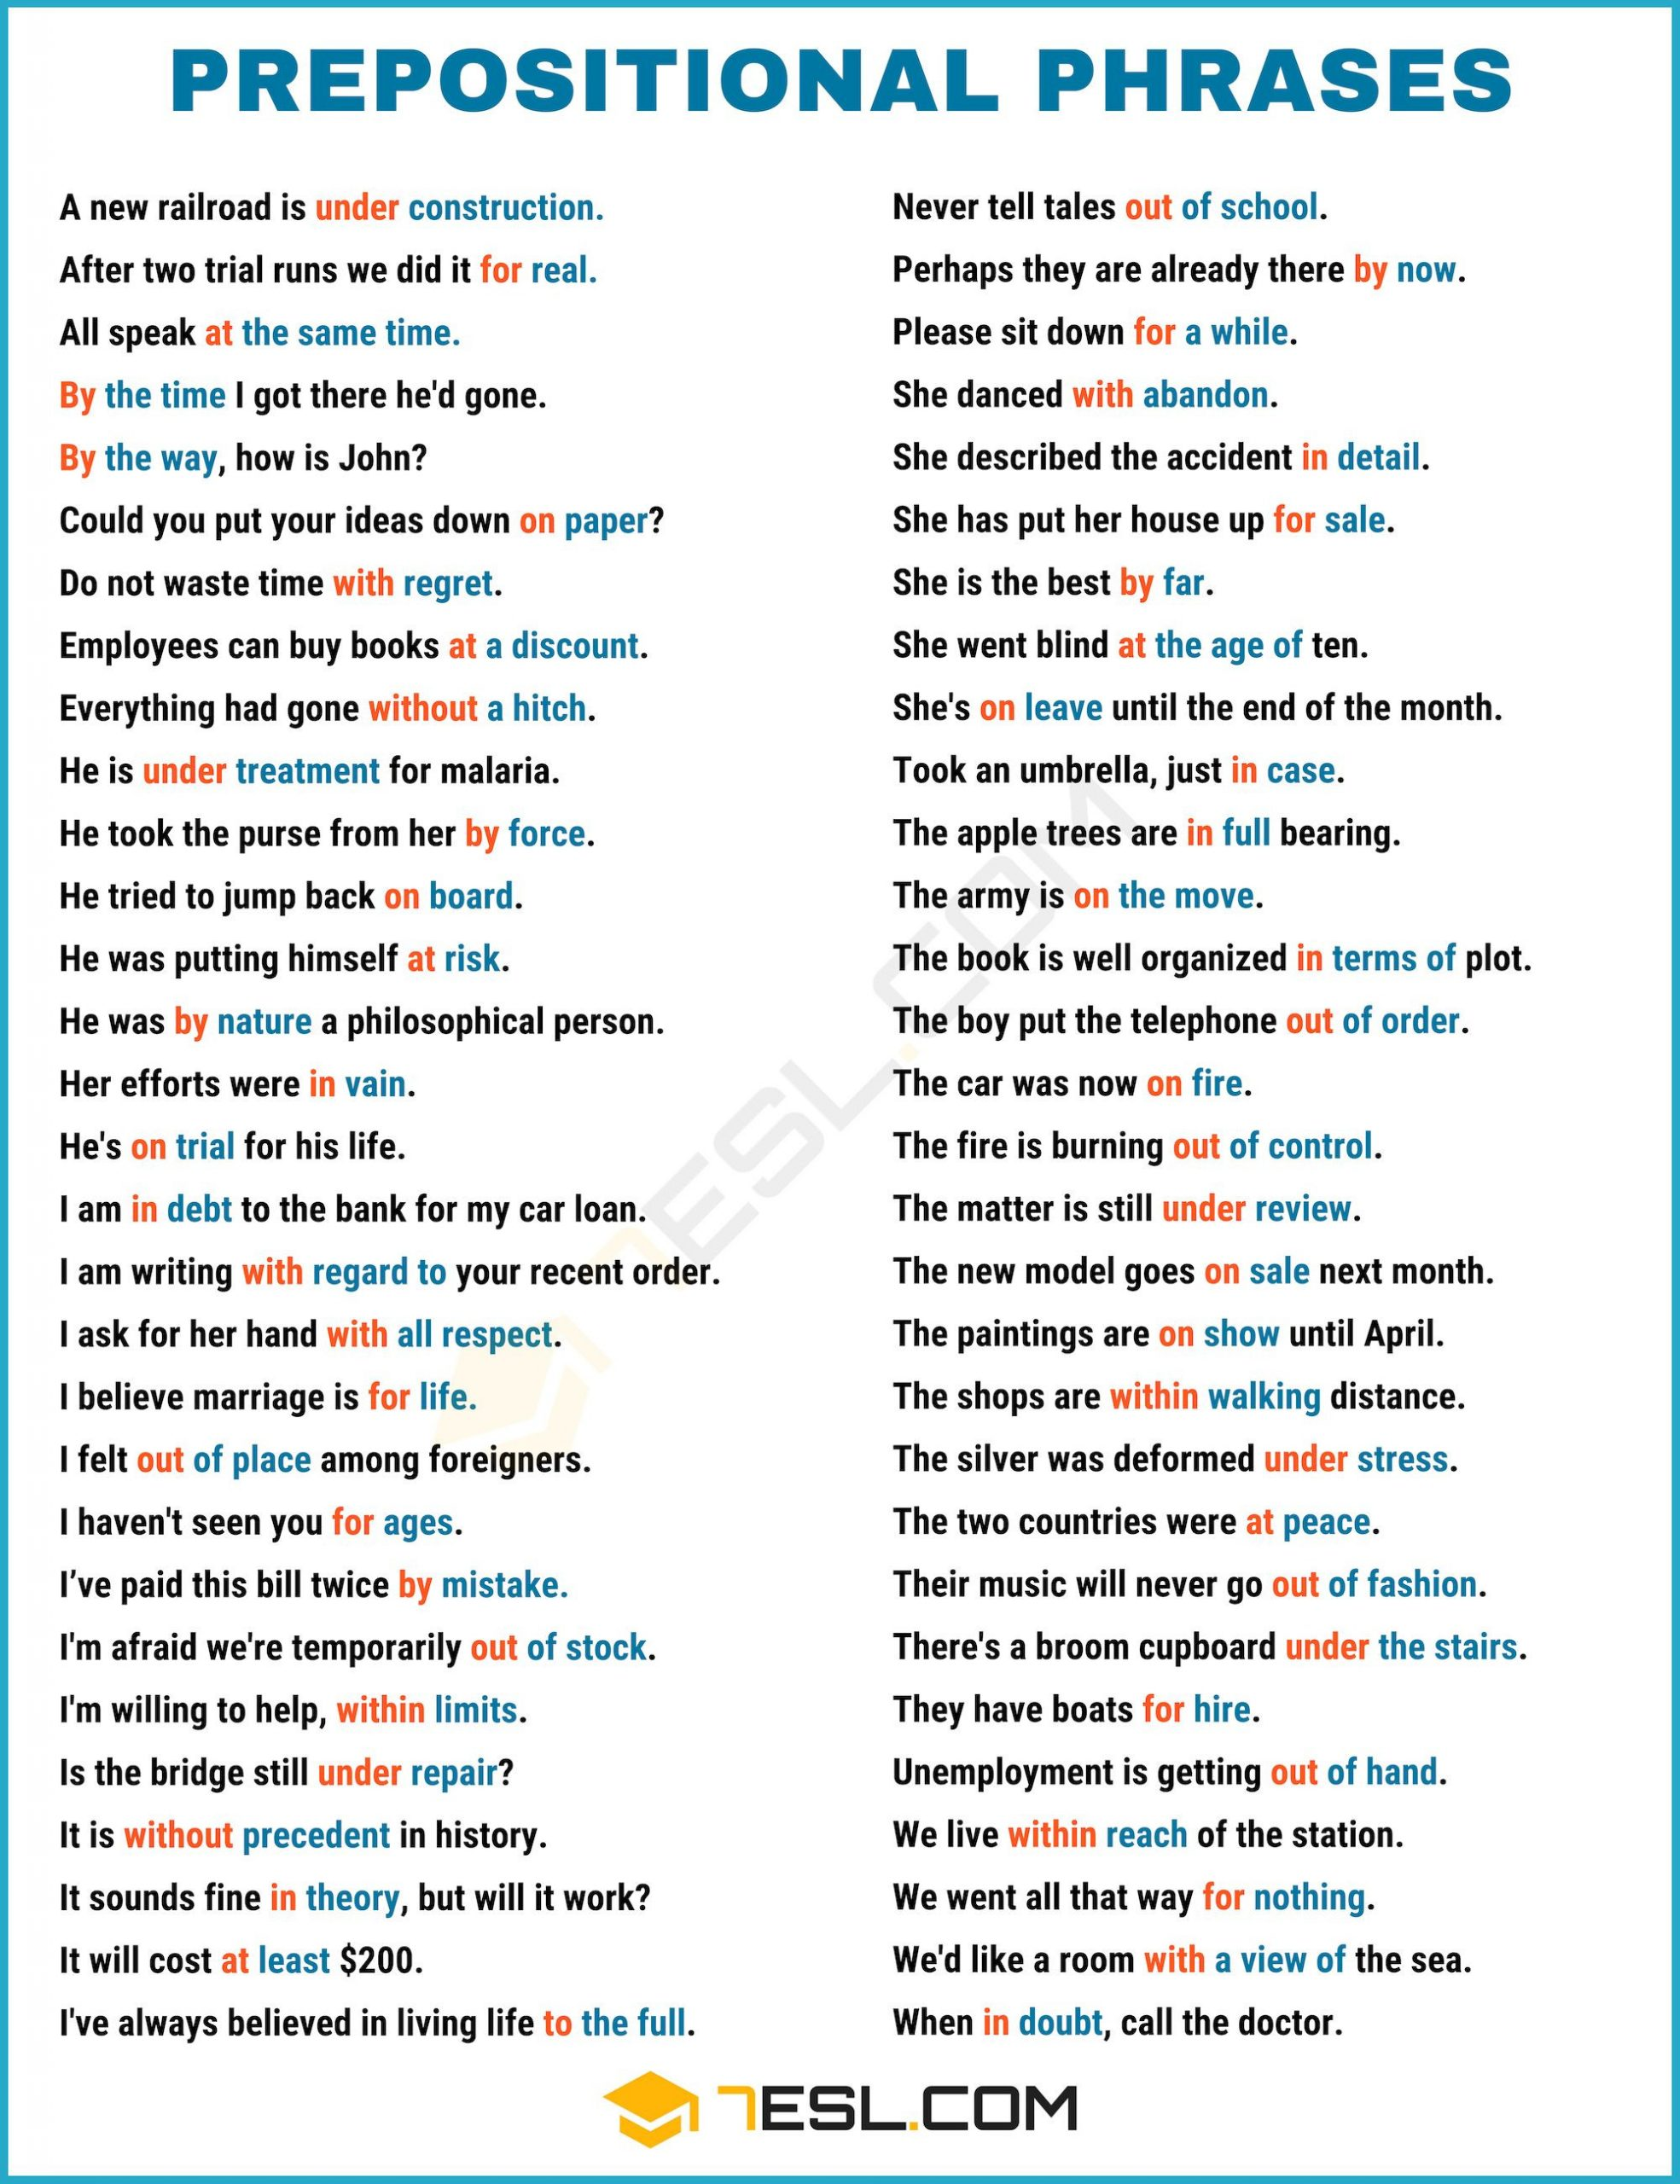 Prepositional Phrase Worksheet 4th Grade 600 Useful Prepositional Phrase Examples In English In 2020